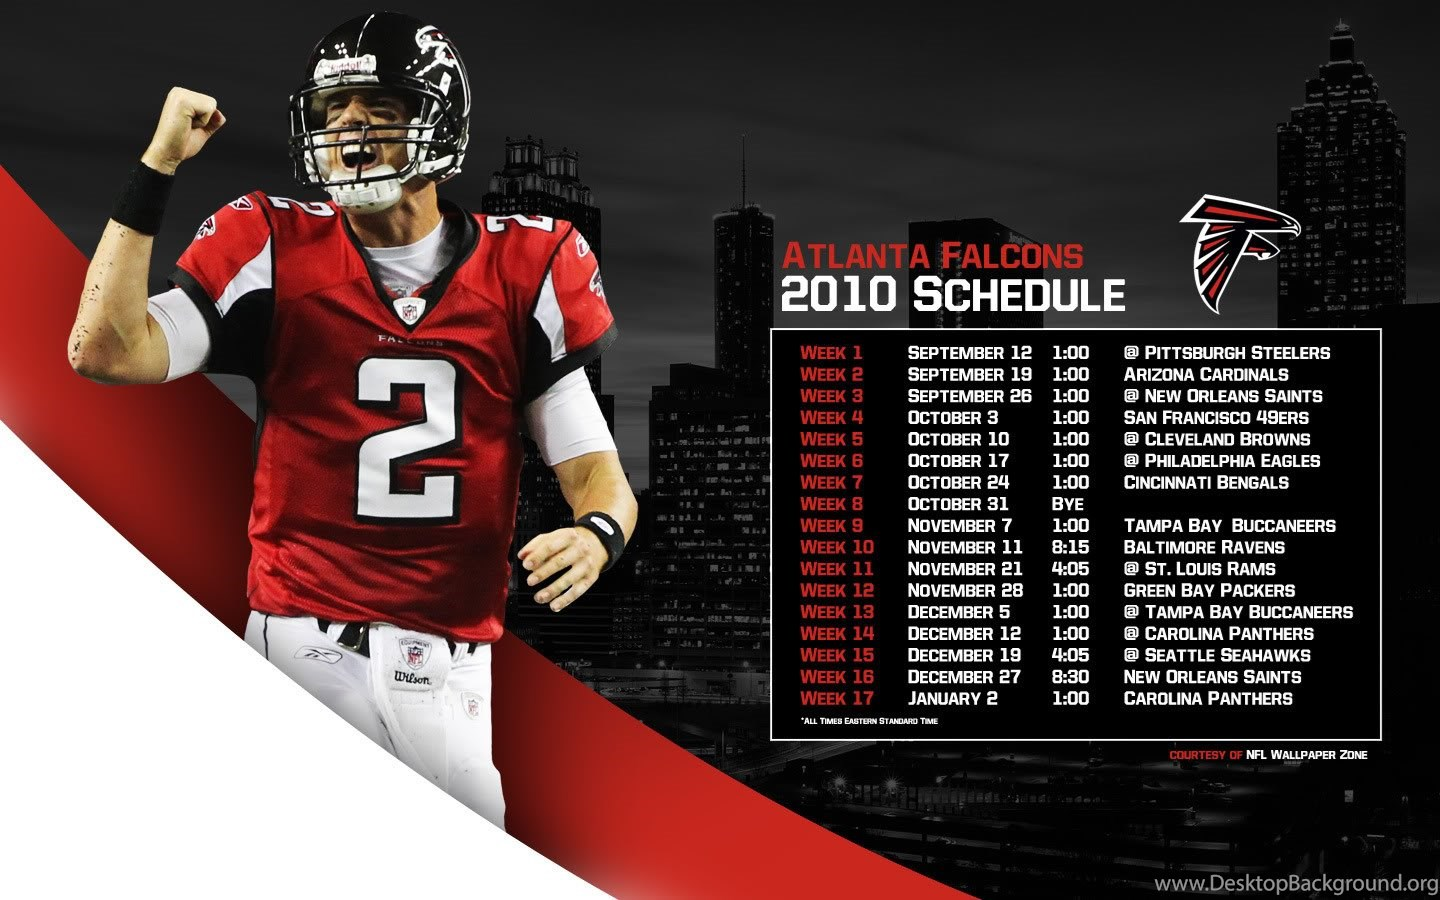 nfl wallpapers zone: 2010 atlanta falcons schedule wallpapers matt